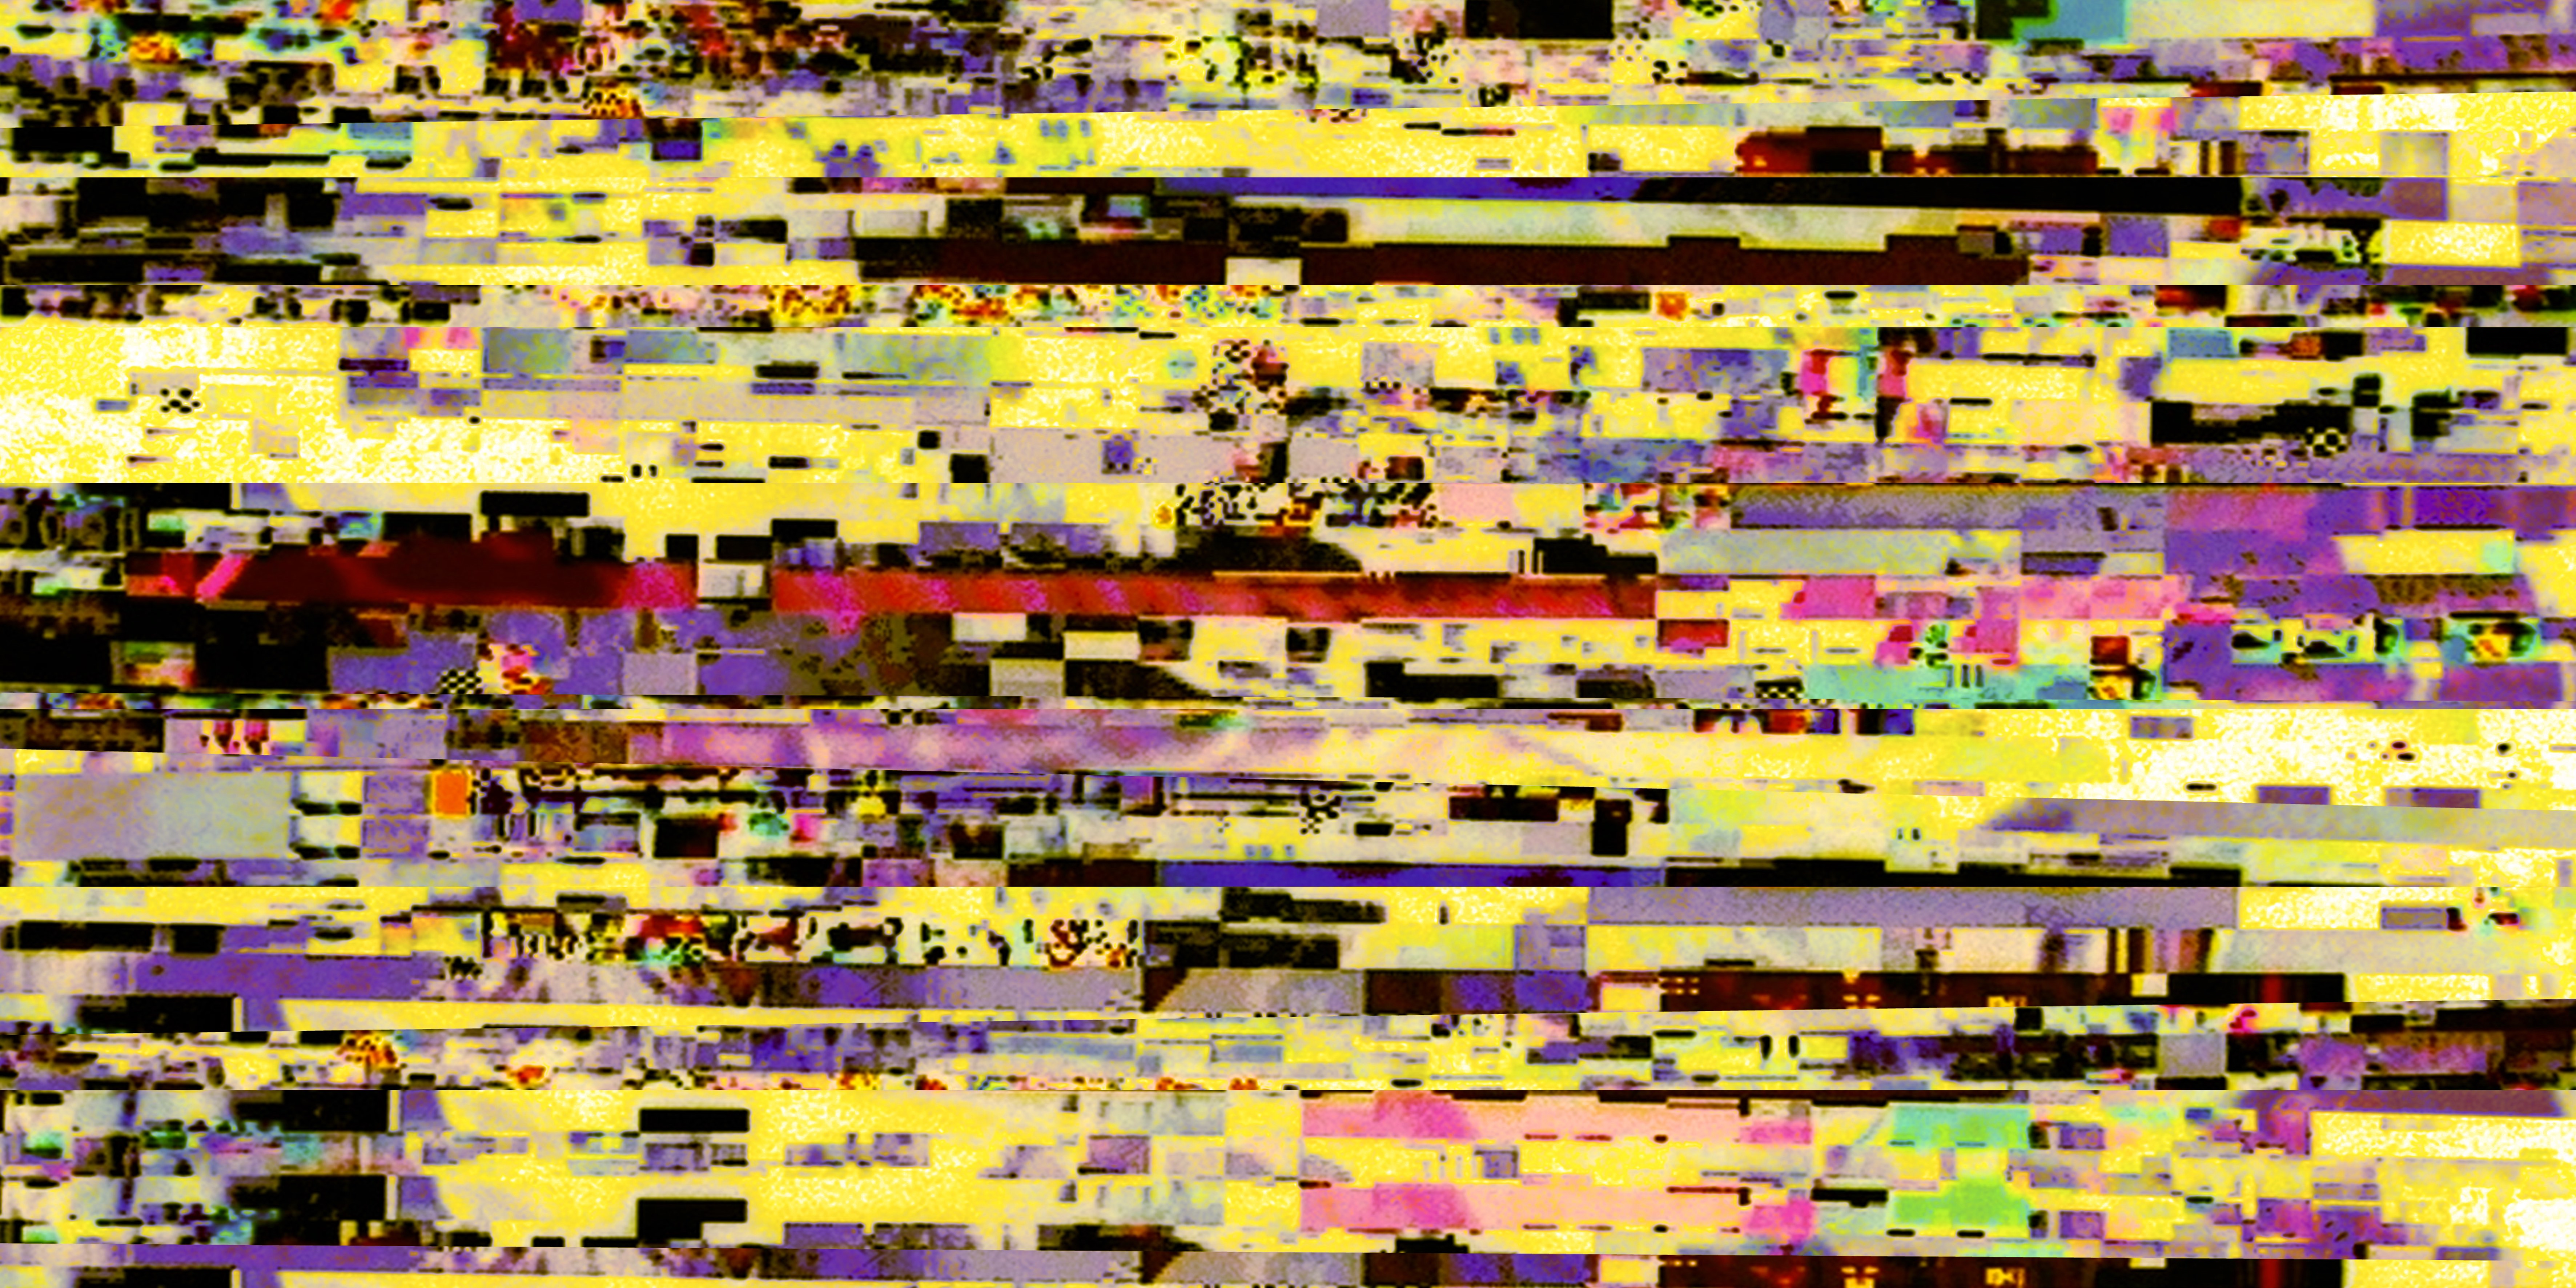 beautiful_works_crypto_glitch_for_above_your_couch_3_180_90_april_2018_KOMPRIMIERT